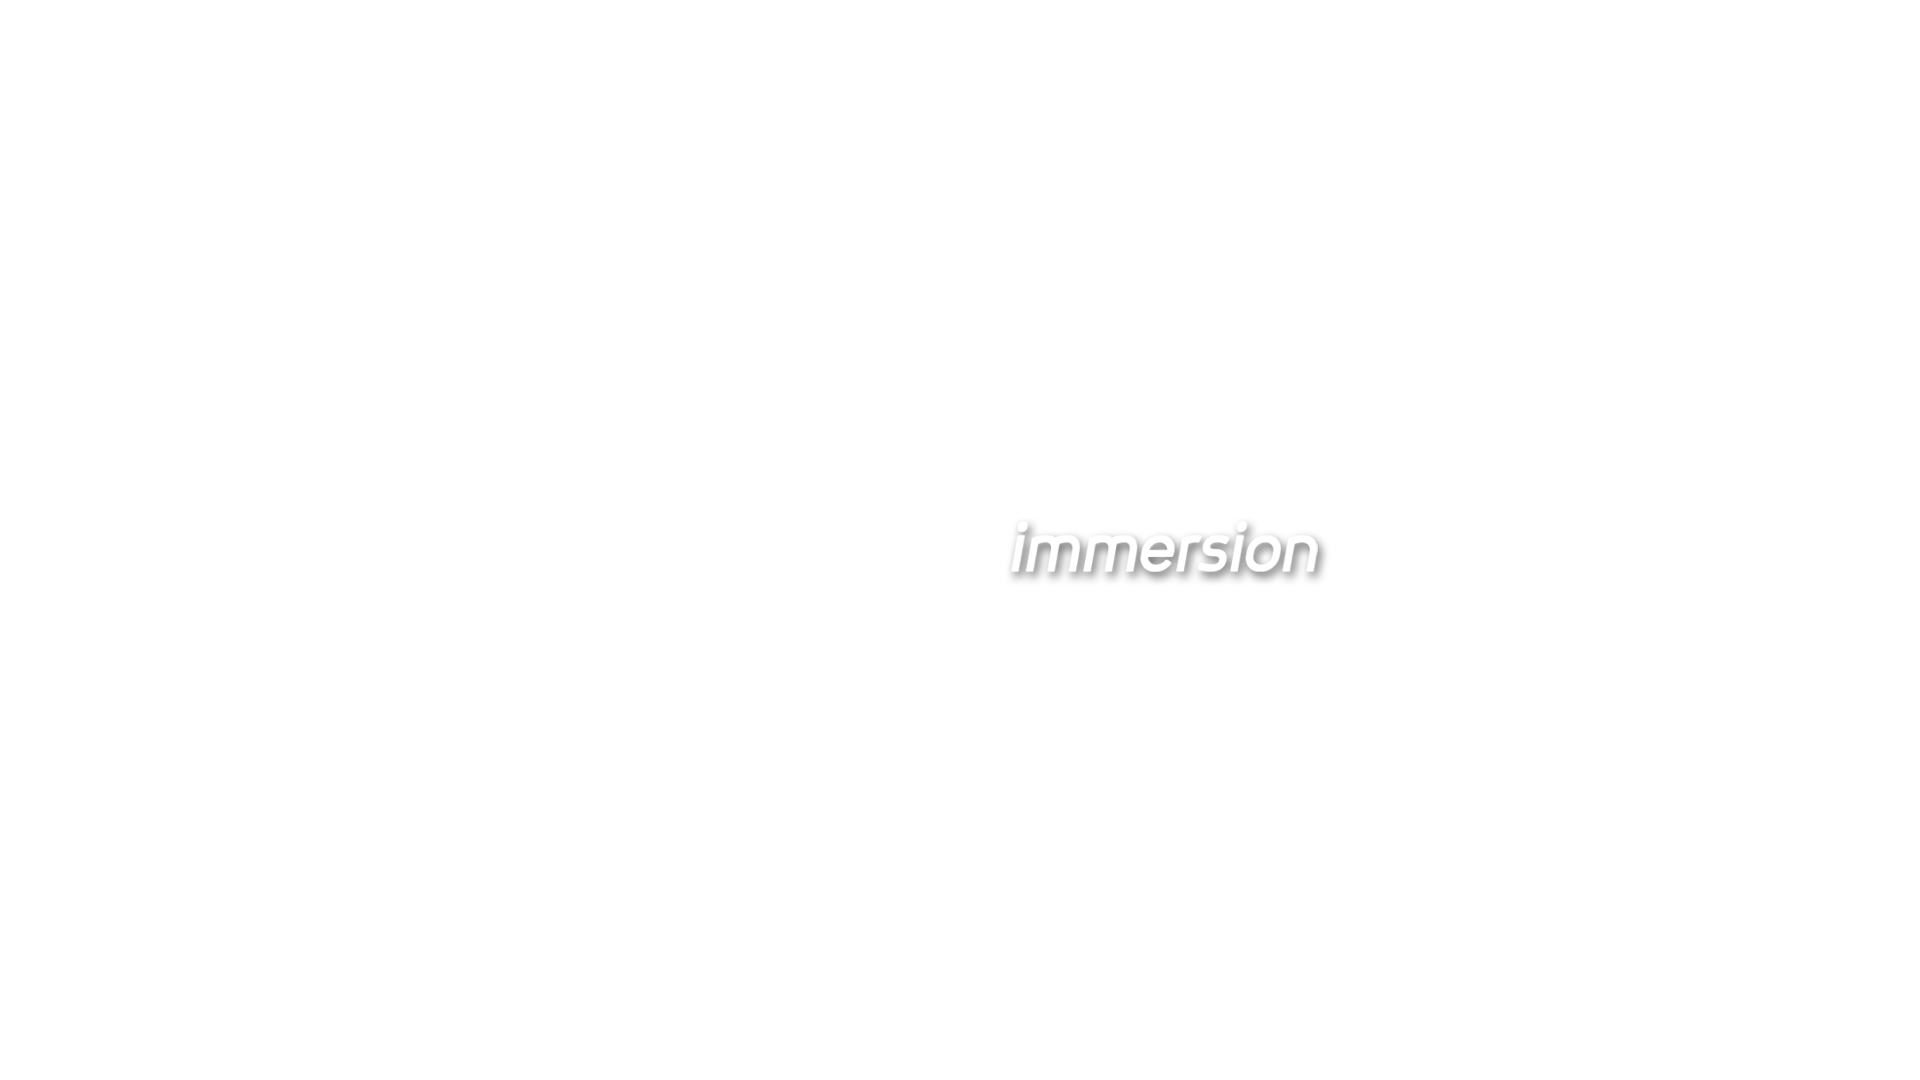 Immersion text